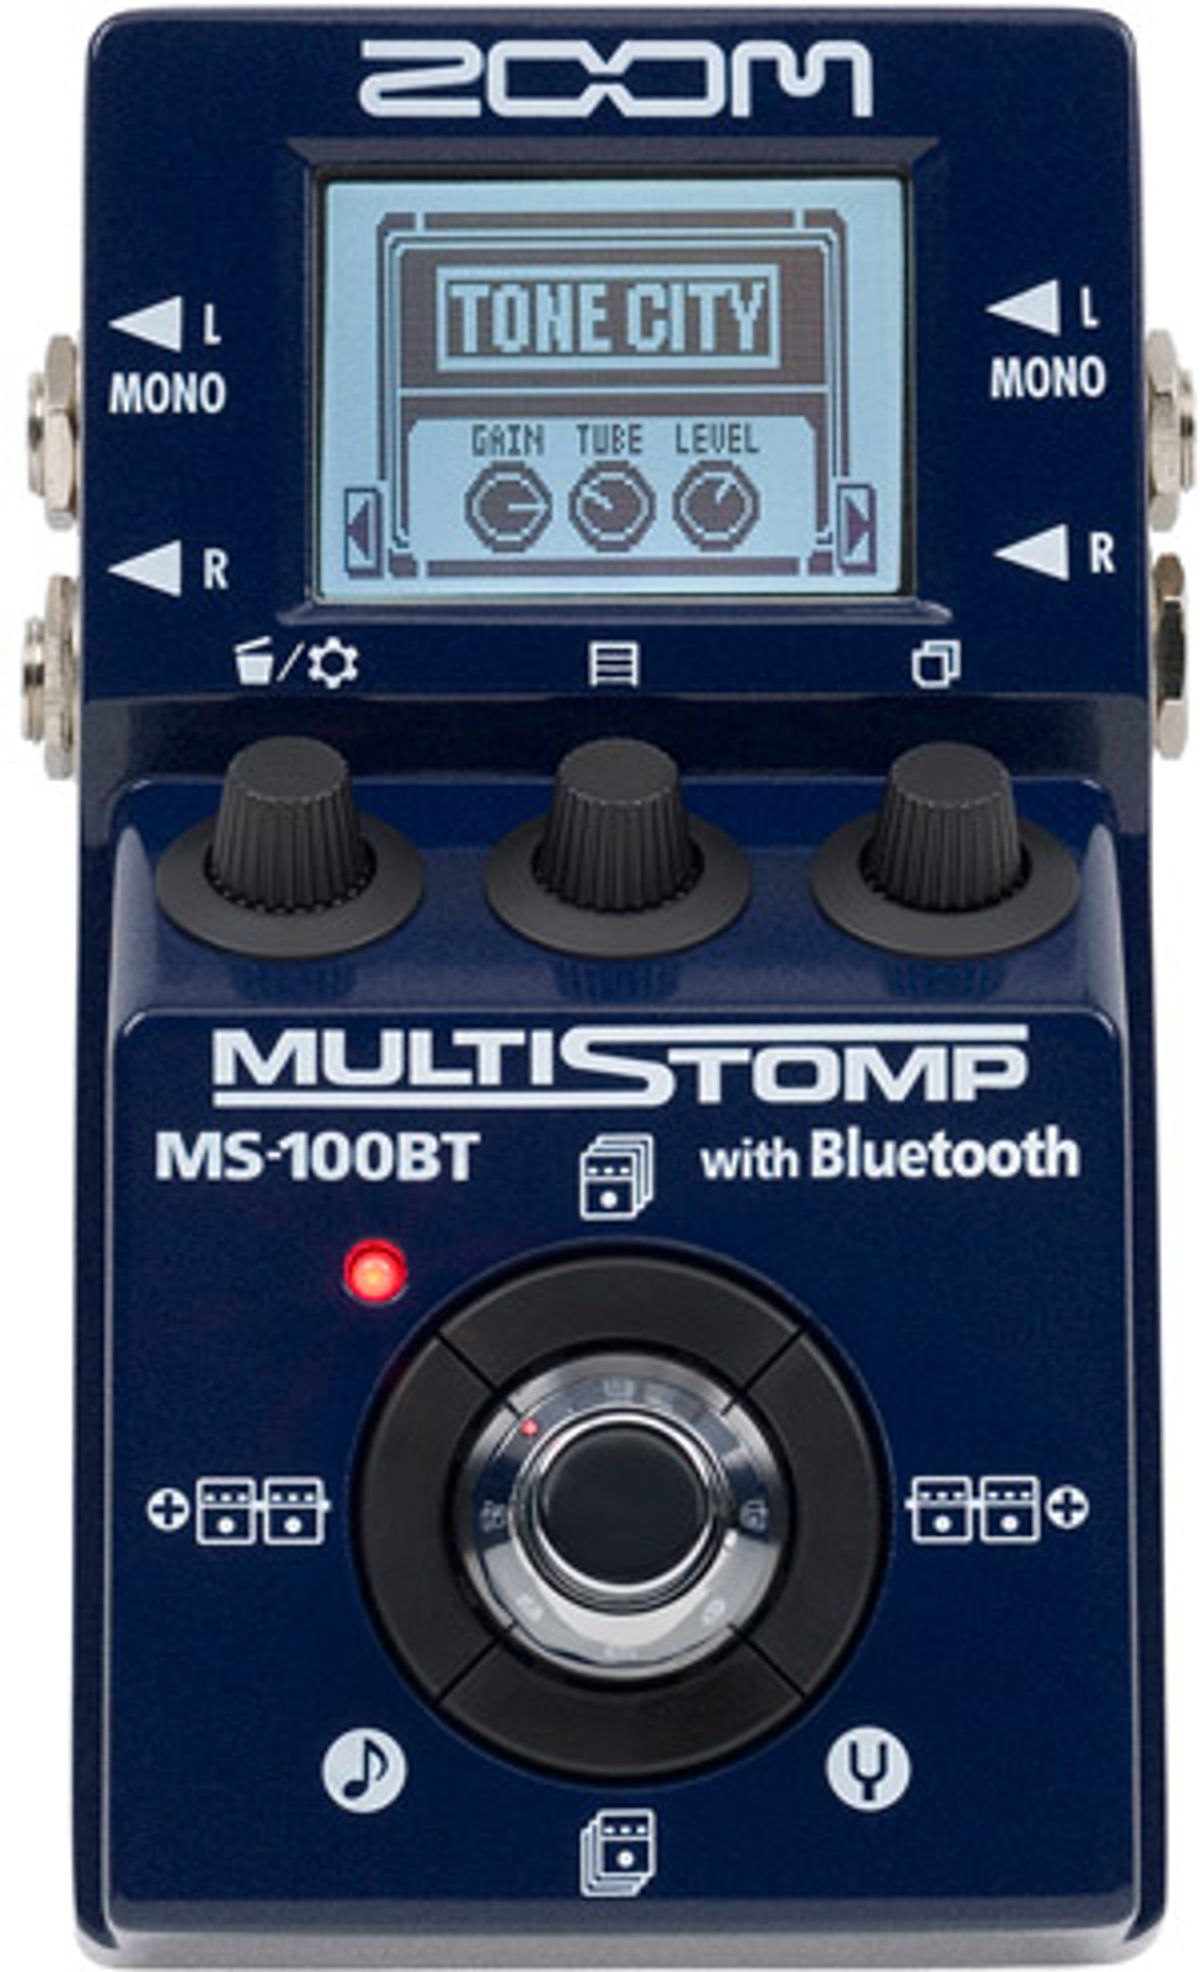 Zoom MS-100BT MultiStomp with Bluetooth Pedal Review